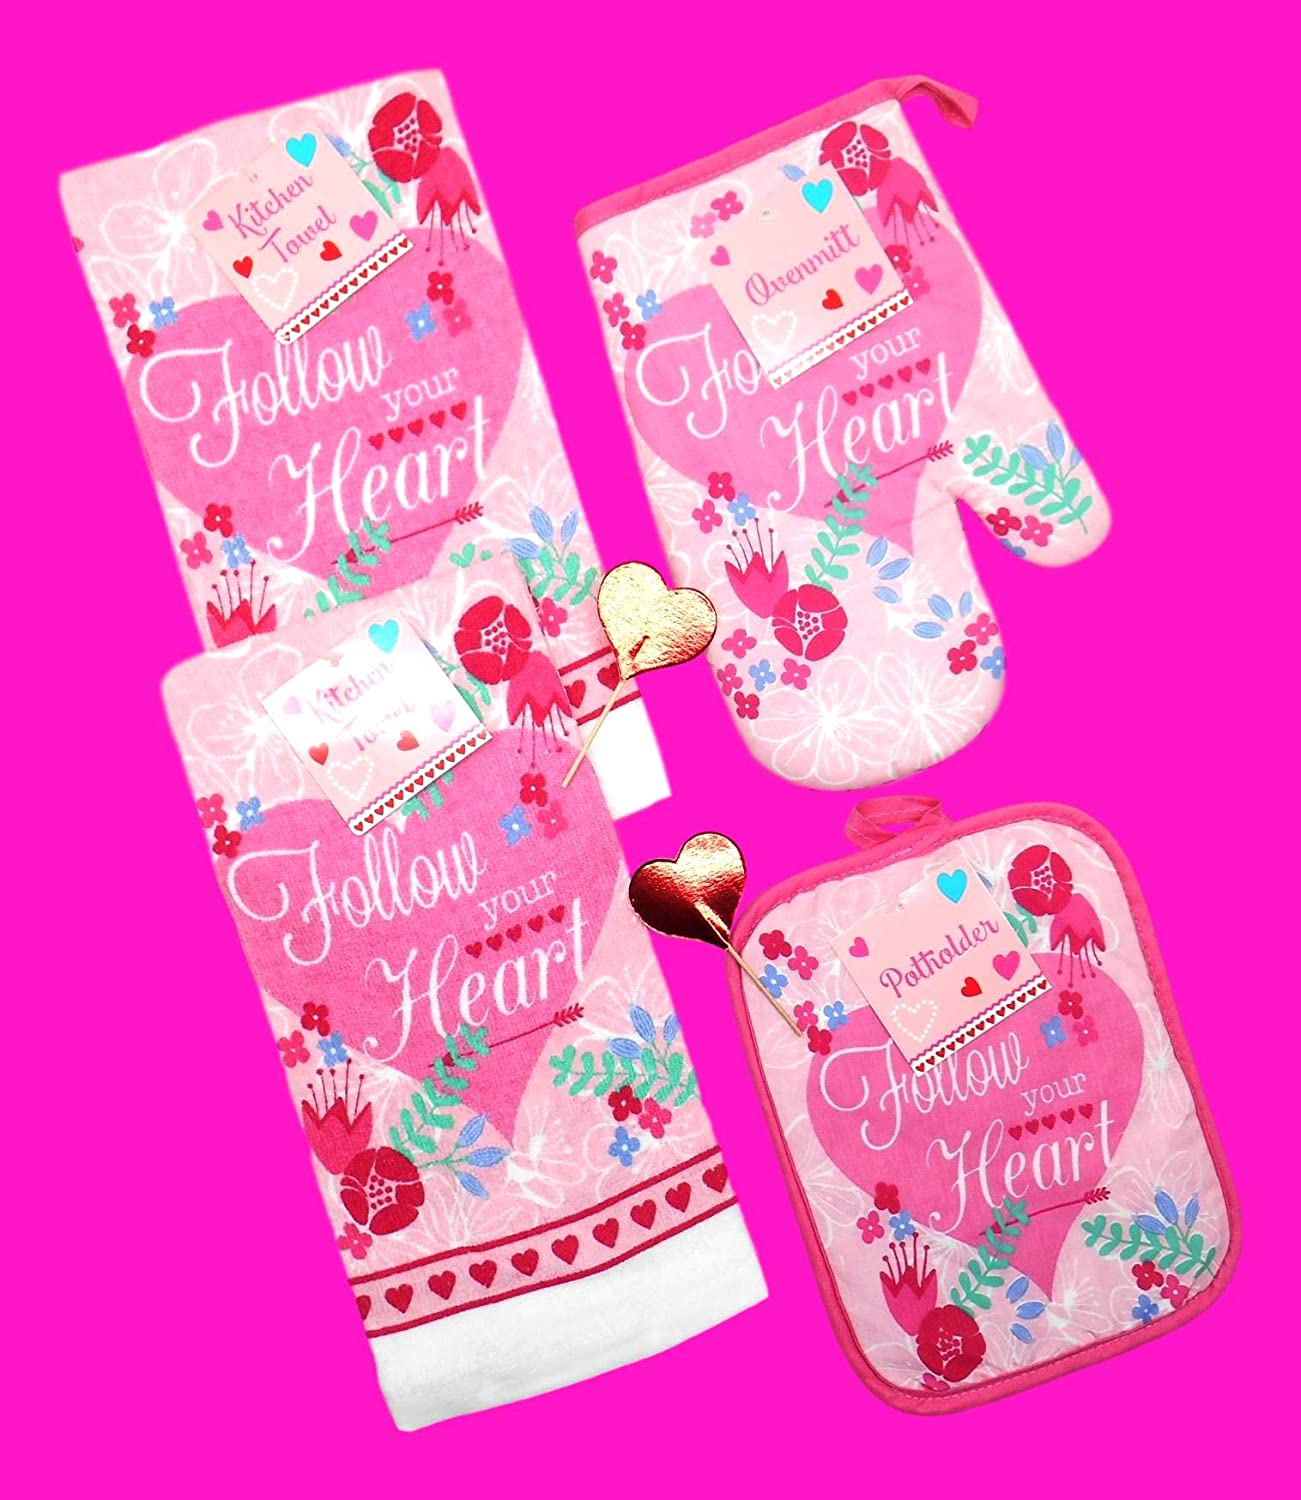 1 Oven Mitt and 2 Red Heart Picks Holiday Valentine Dish Towels Set Includes 2 Kitchen Towels Total of 6 pc Follow Your Heart - Heart 1 Pot Holder